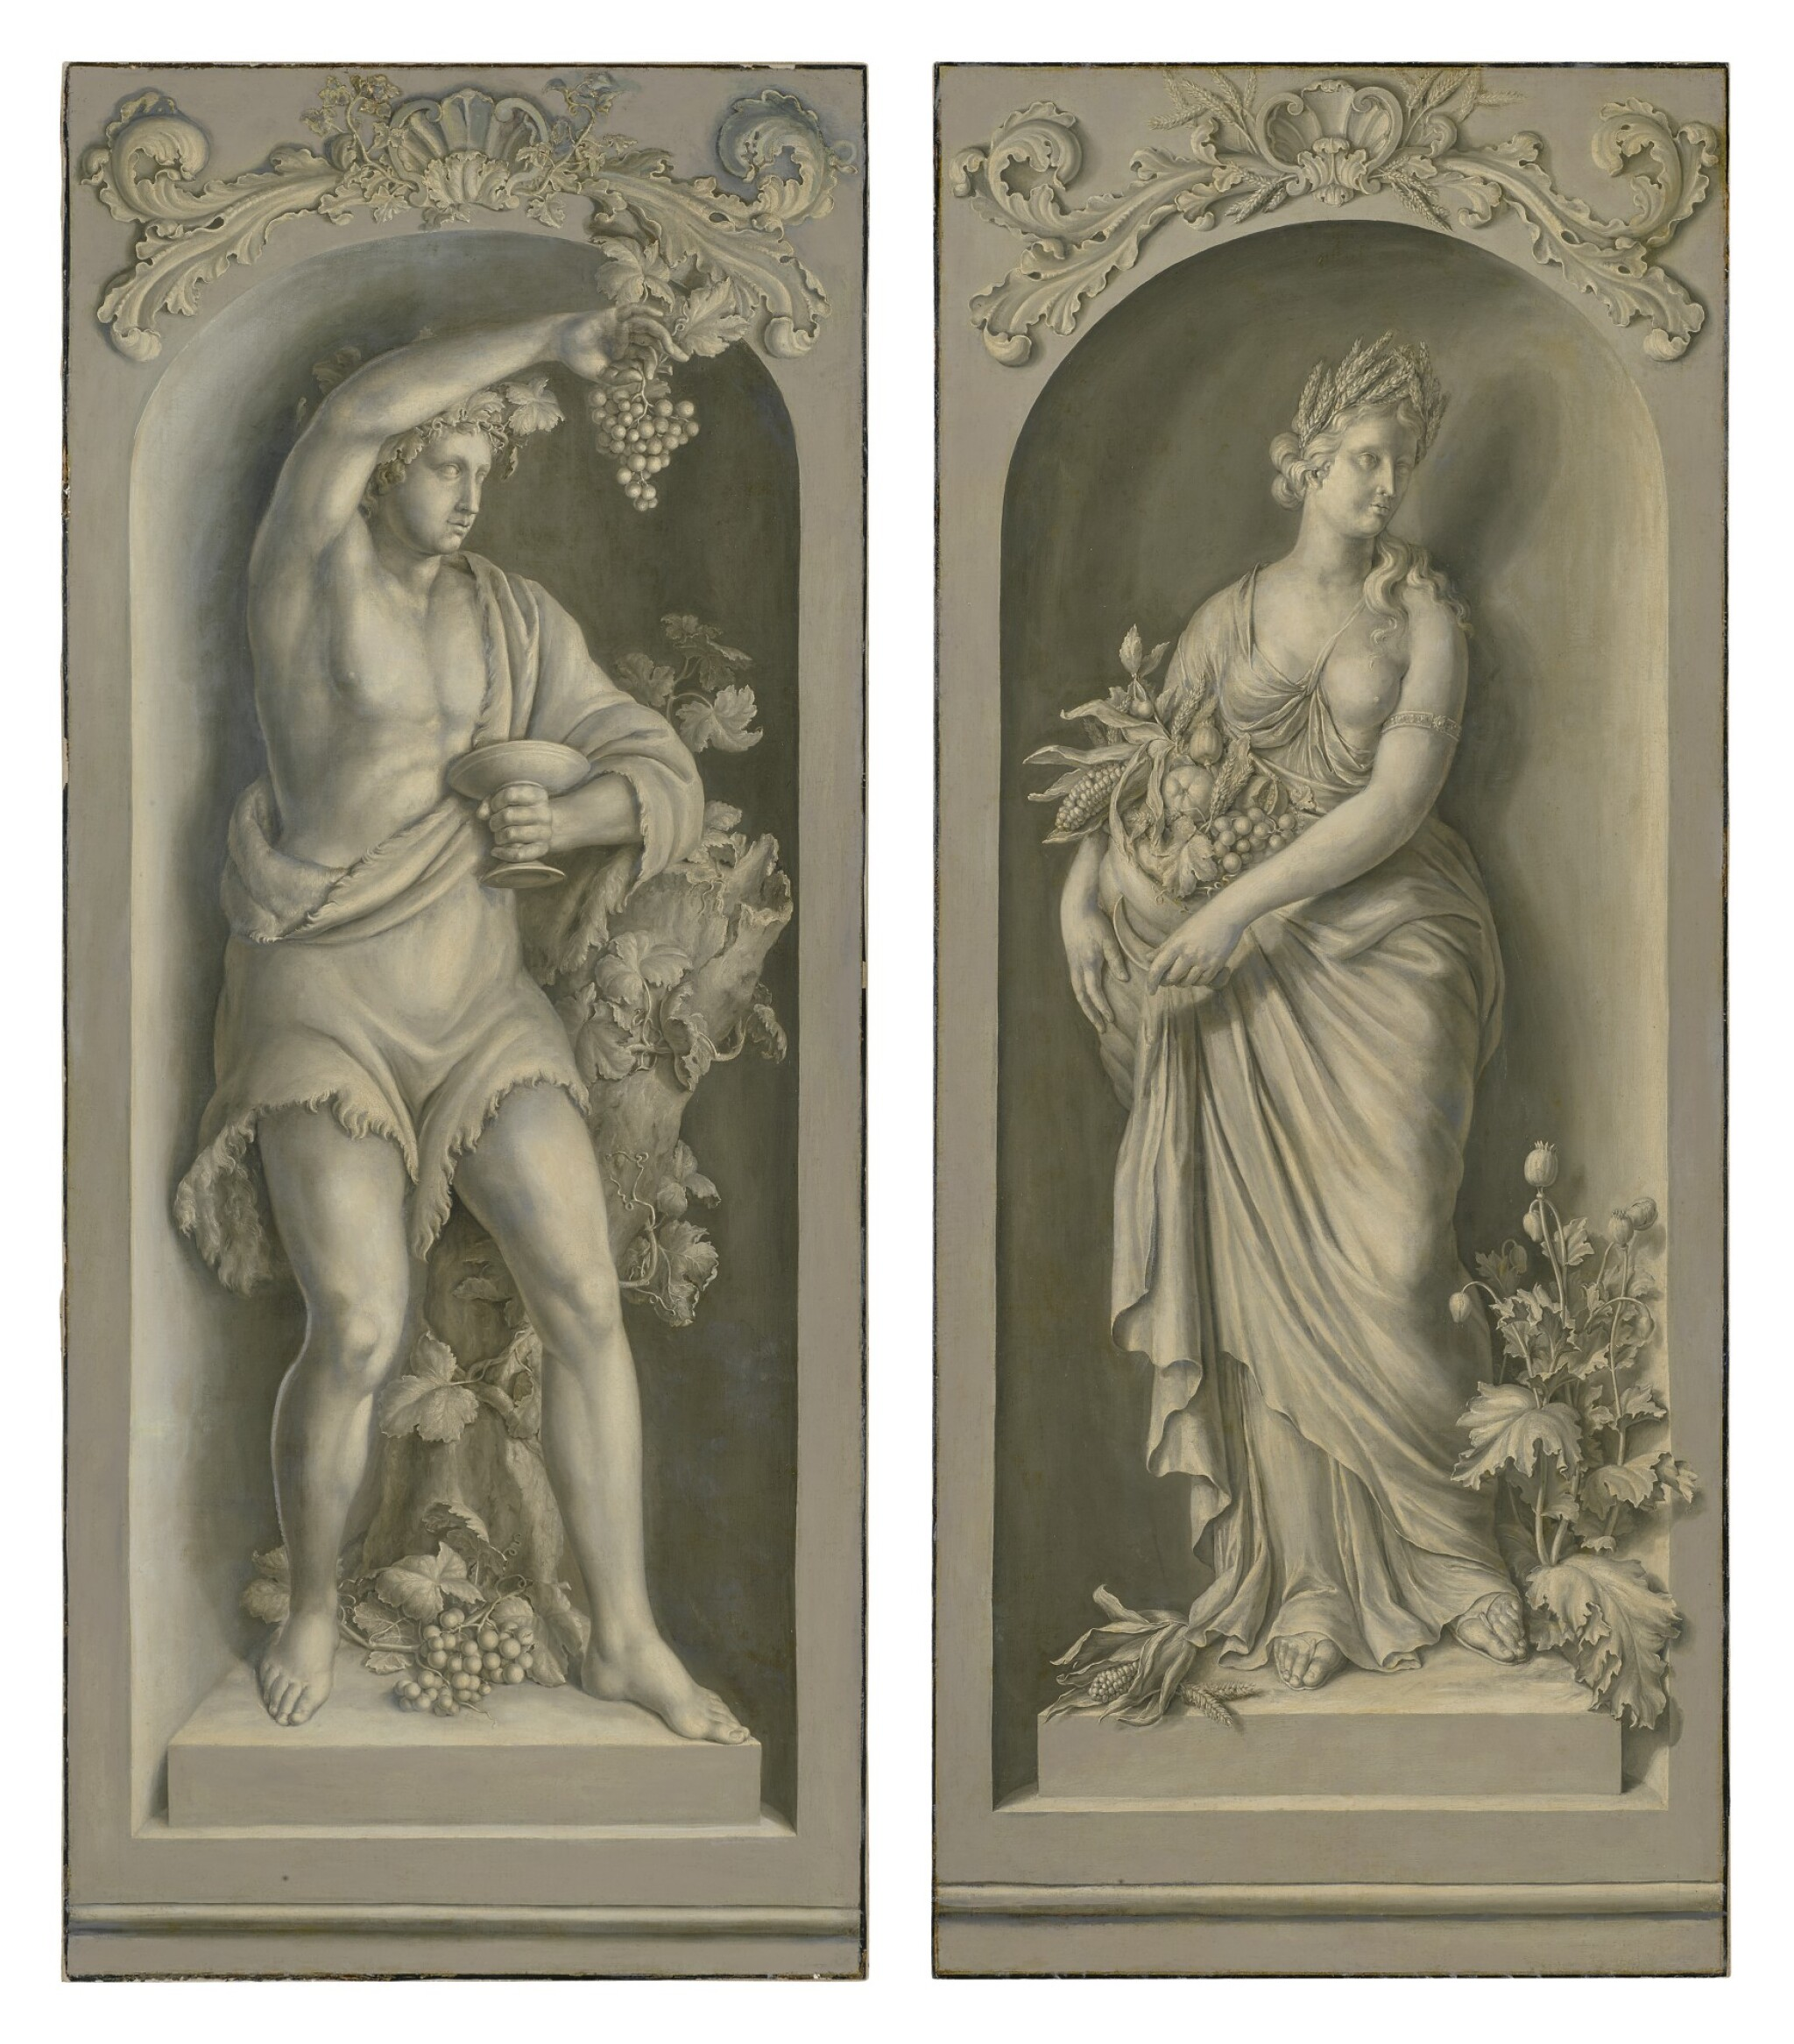 DUTCH SCHOOL, 18TH CENTURY | BACCHUS AND CERES, A PAIR